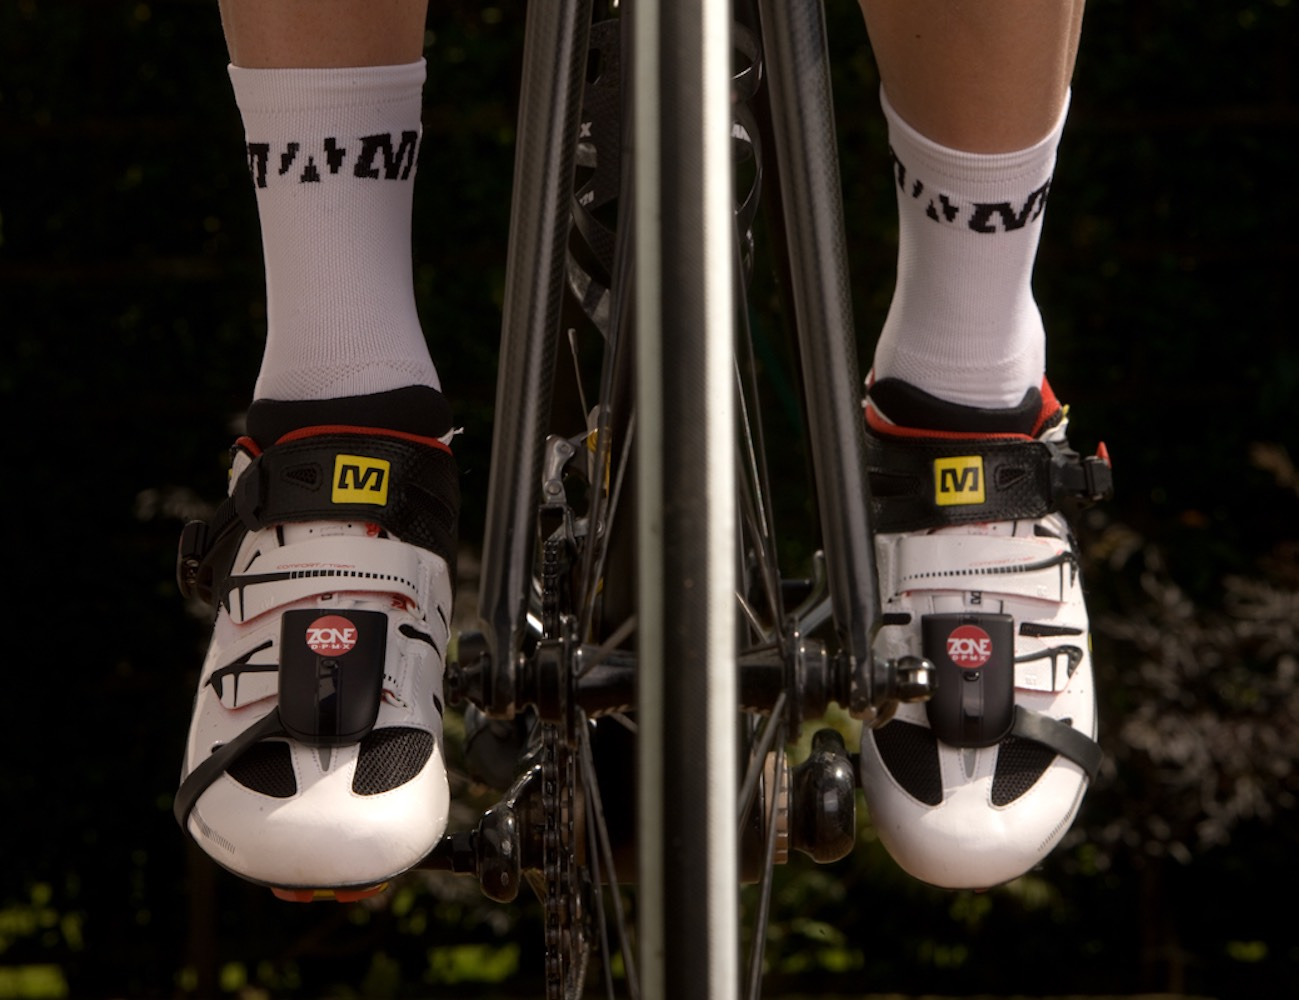 Zone DPMX – The World's First Wearable Power Meter for Cyclists